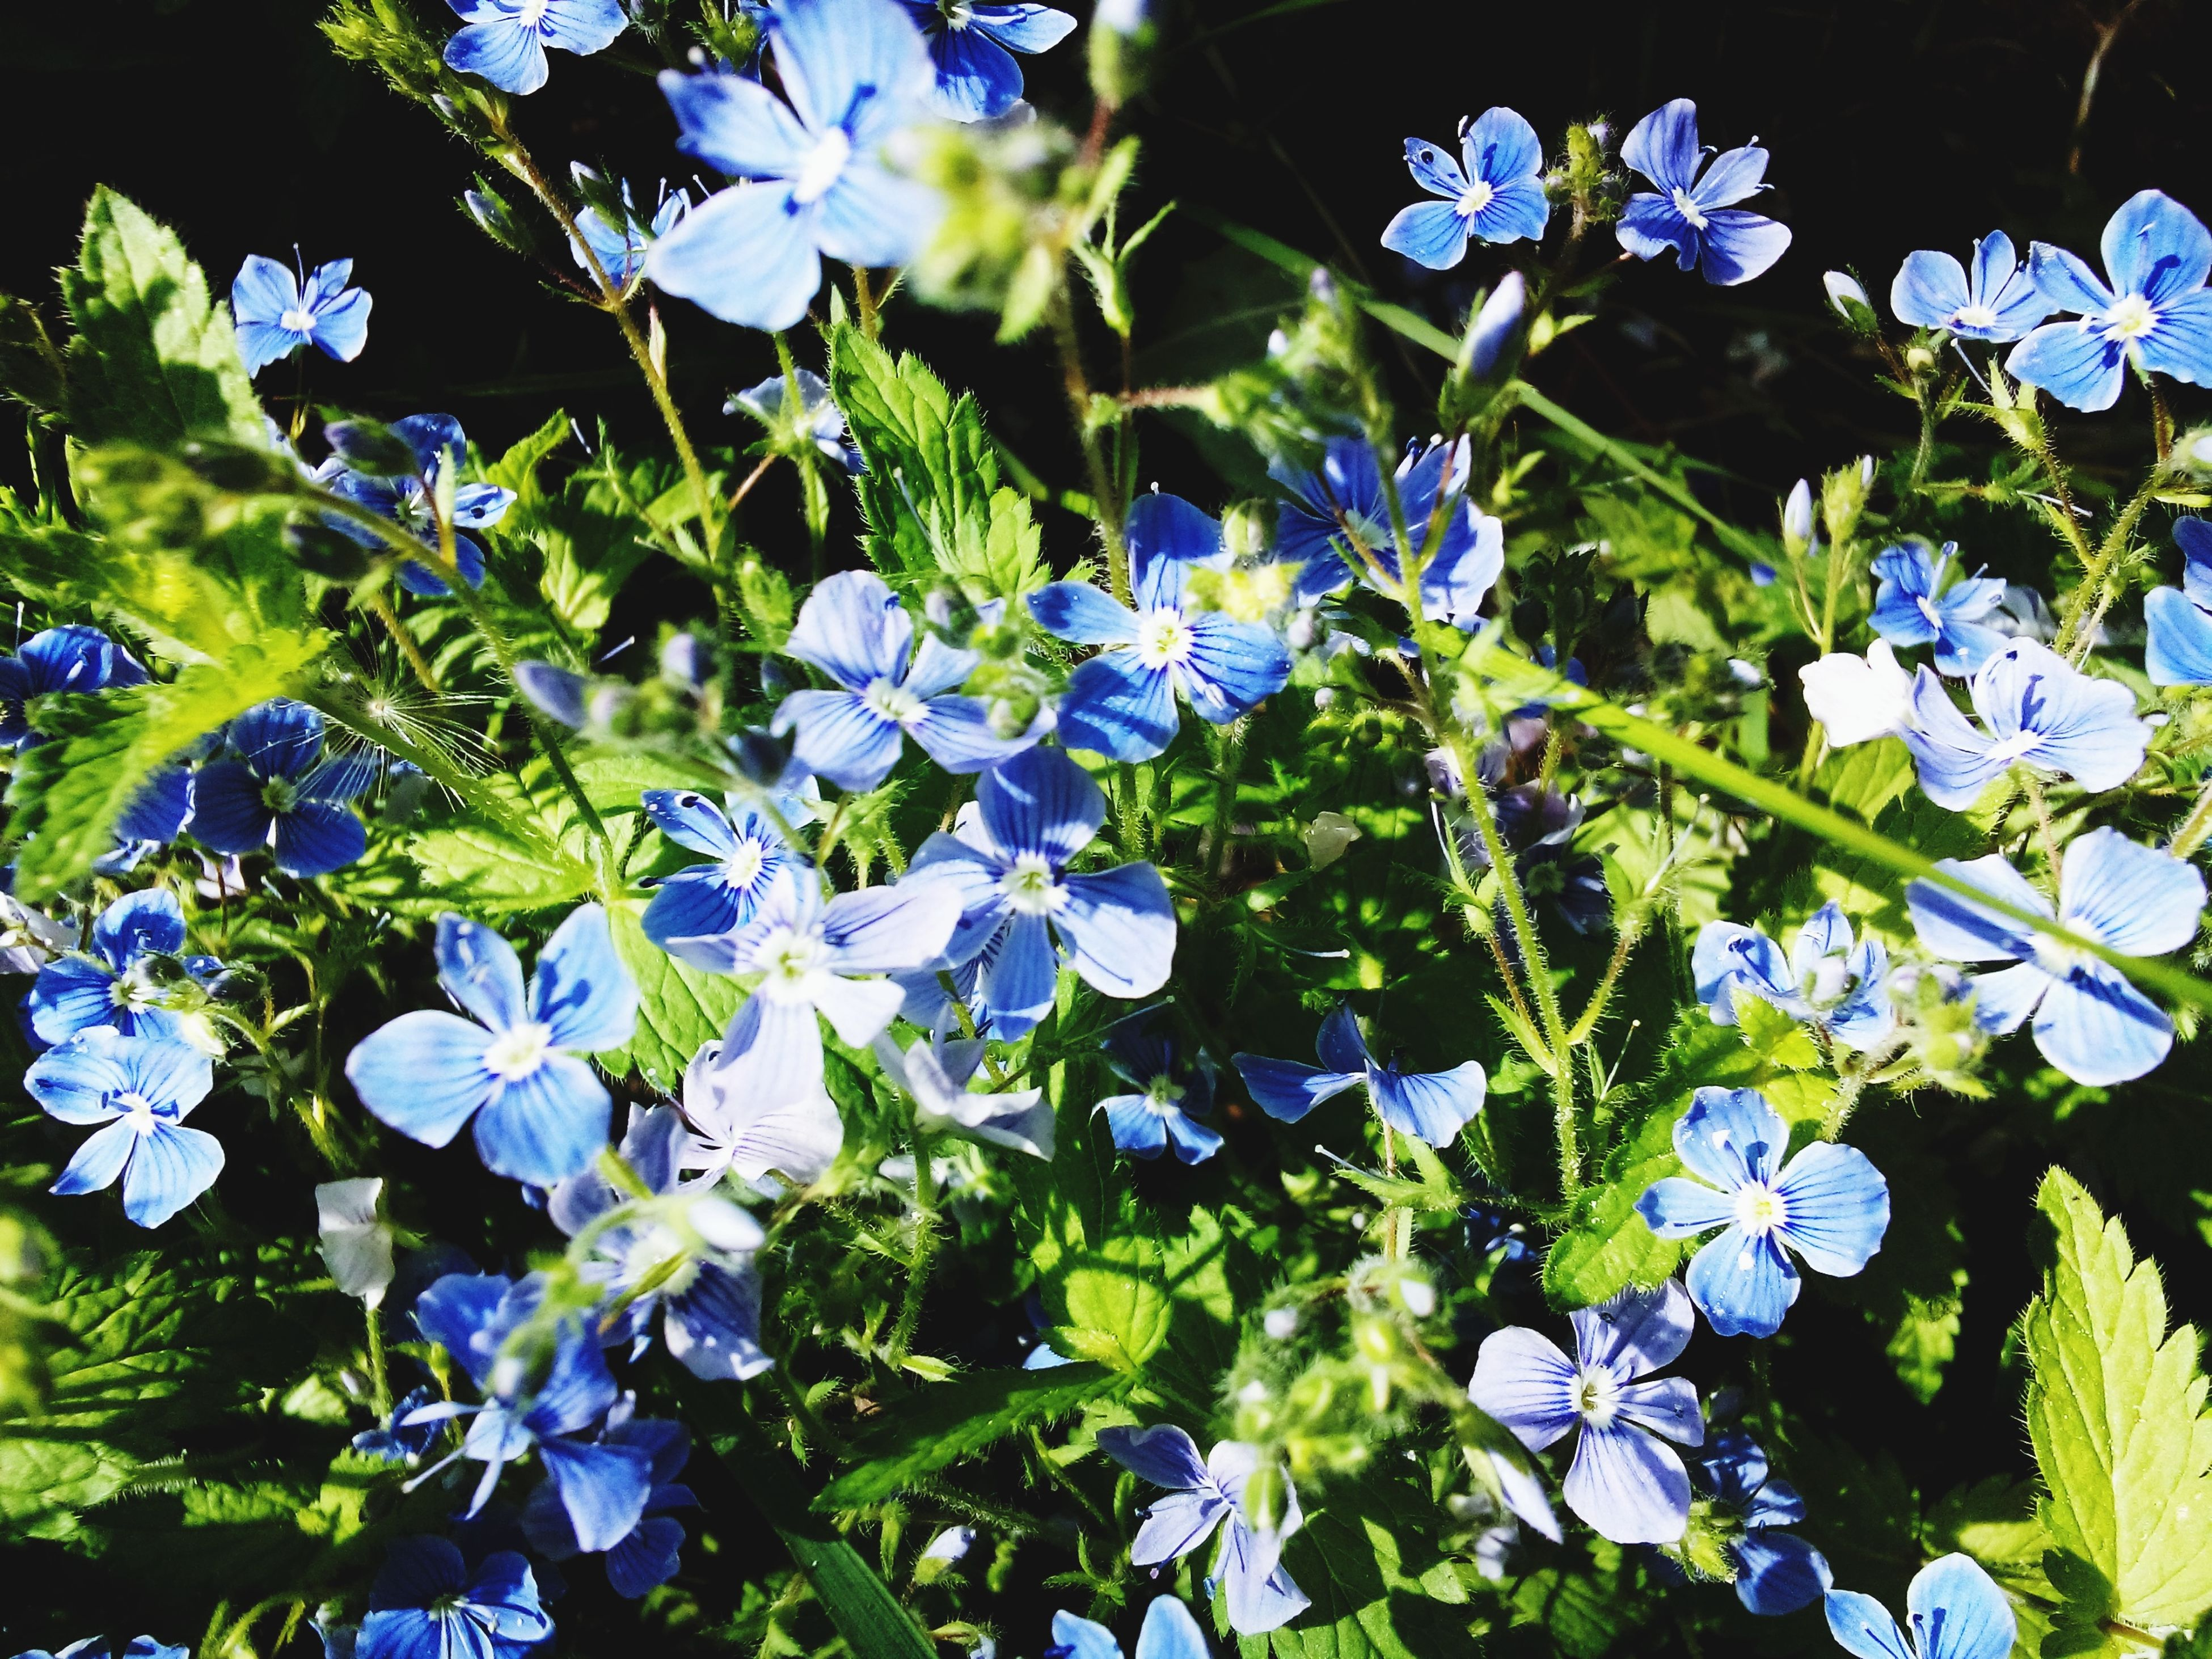 nature, growth, blue, freshness, flower, beauty in nature, fragility, no people, outdoors, day, close-up